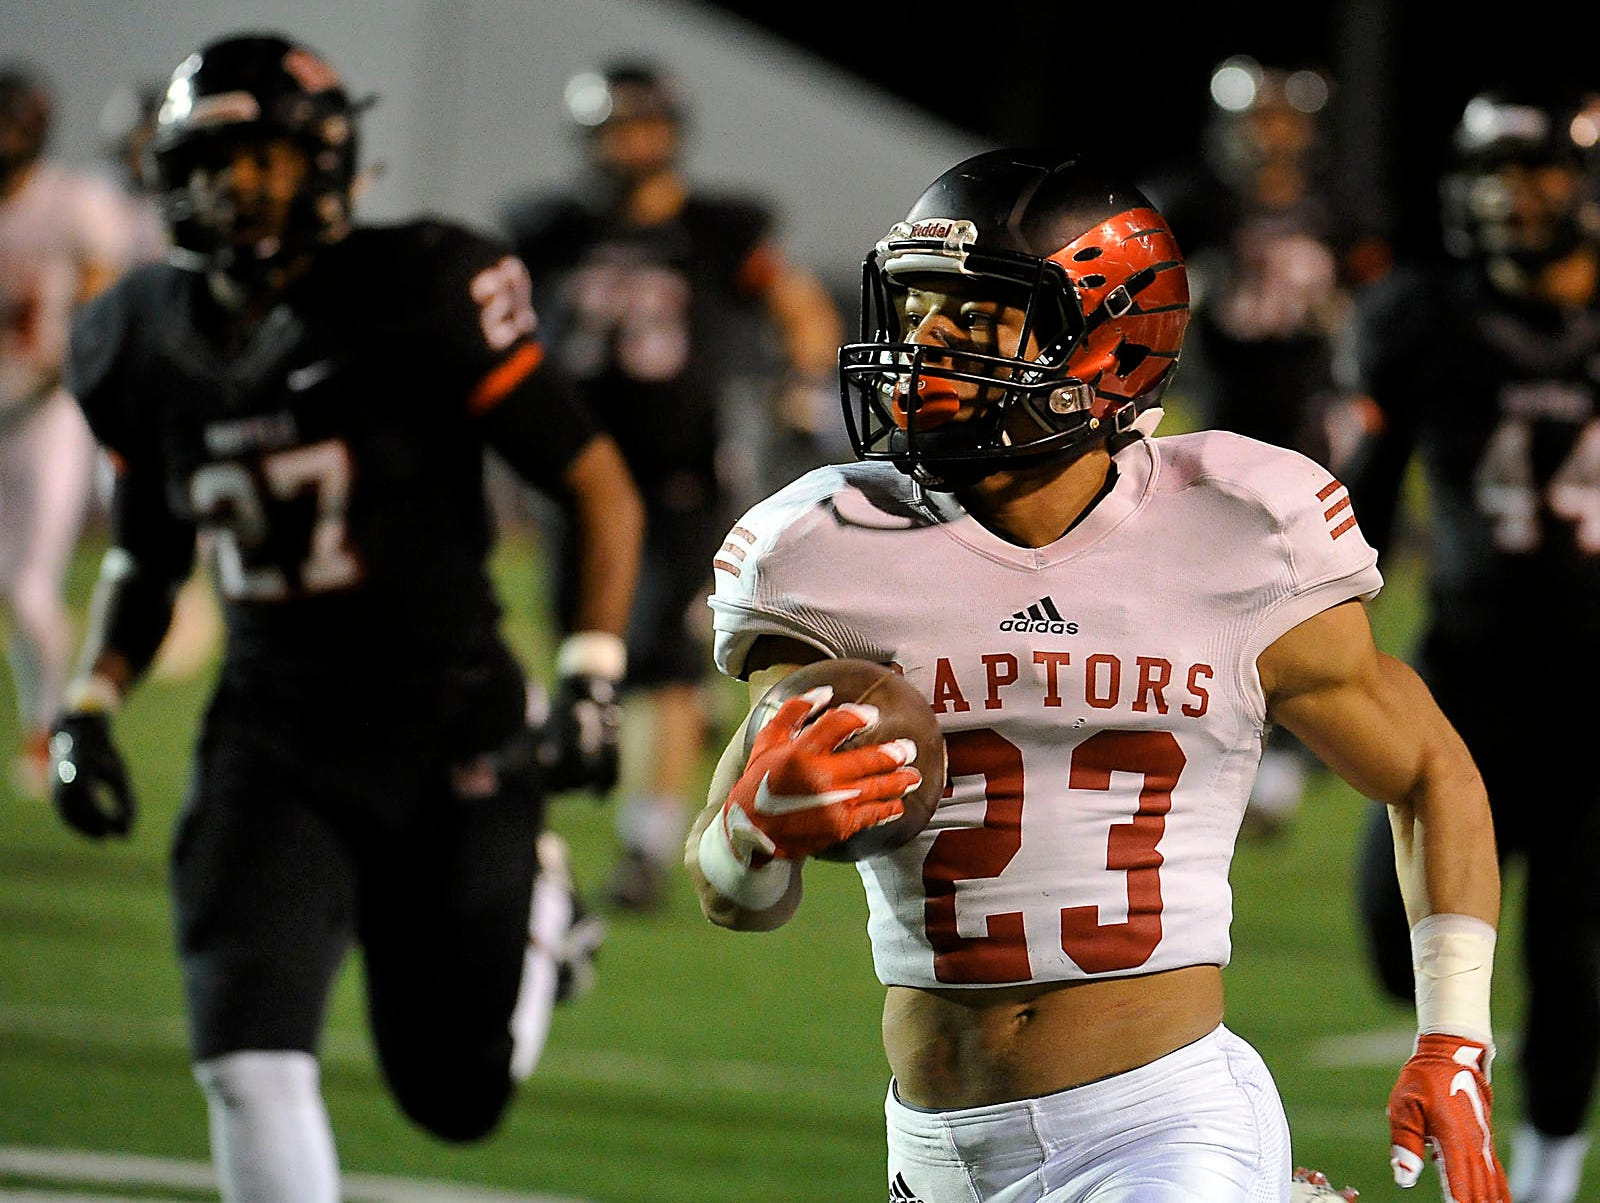 Ravenwood's Chris Rowland (23) sprints for a touchdown against Maryville in the second quarter of the Class 6A BlueCross Bowl on Dec. 5, 2015, in Cookeville.